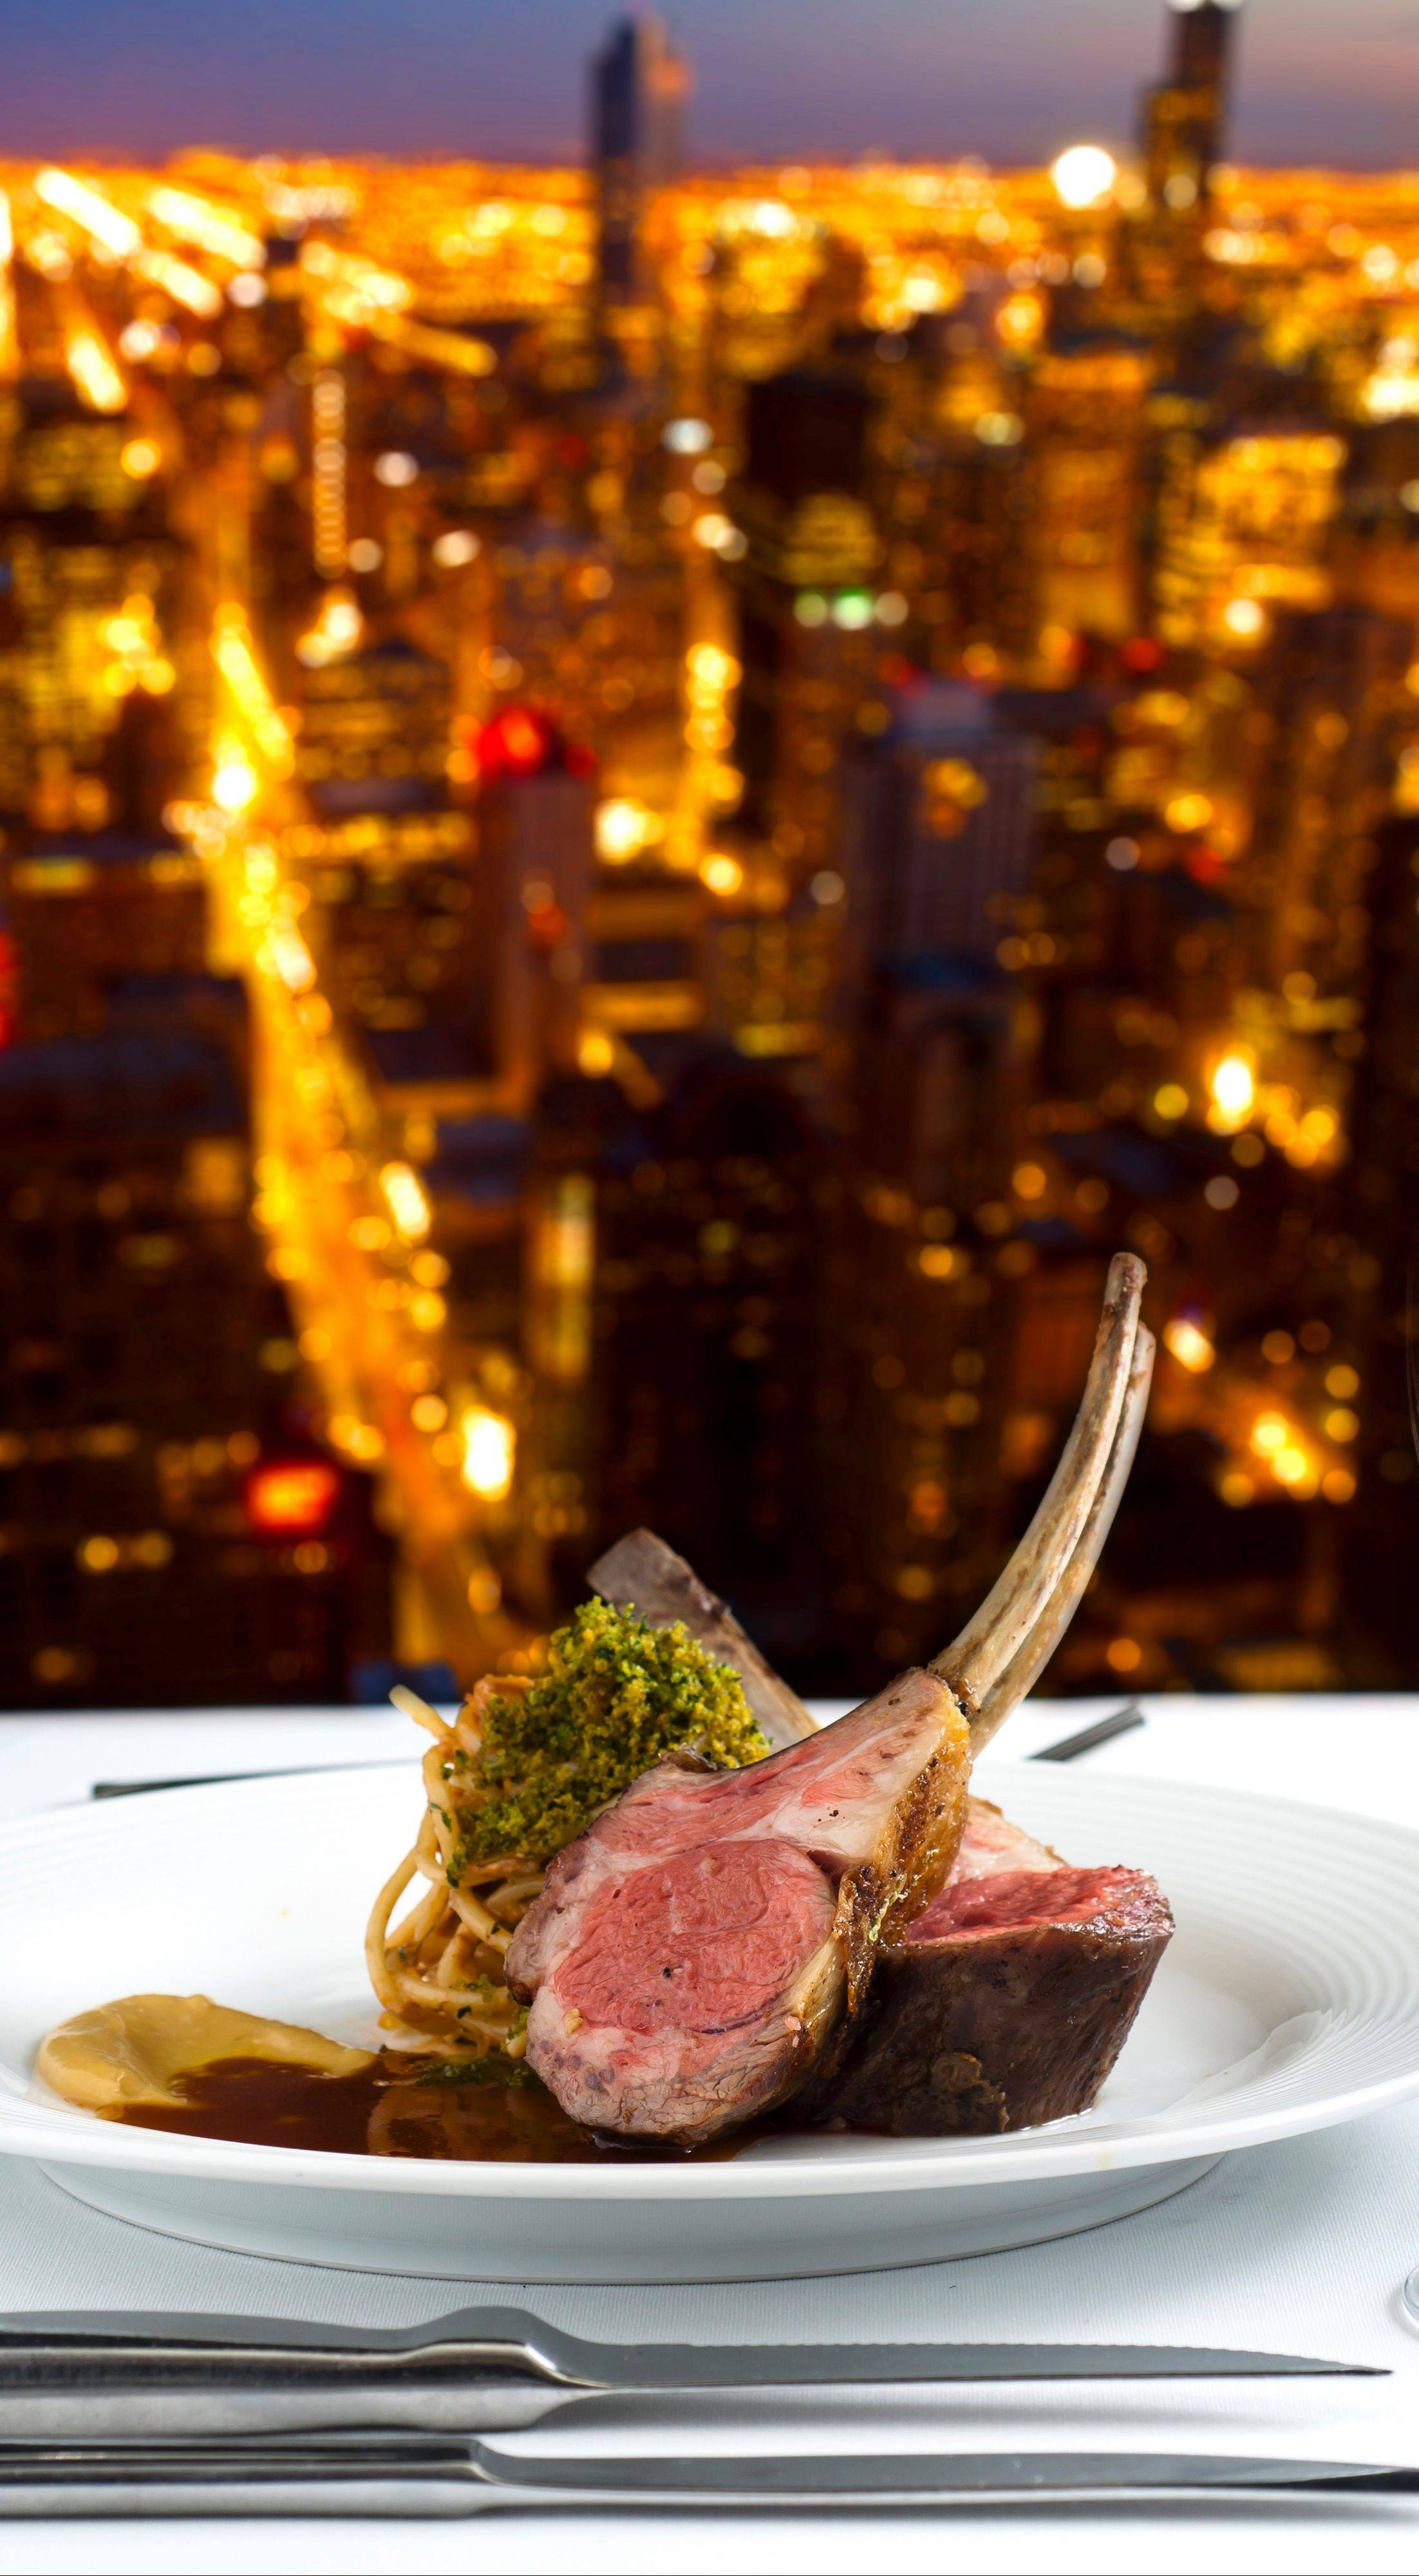 Rack of Lamb with Parmigiano-Reggiano Panna Cotta and Roasted Root Vegetables with Mint Pesto is one of the dishes chef Rosalia Barron, chef at The Signature Room, will prepare next month at the James Beard House in New York City.